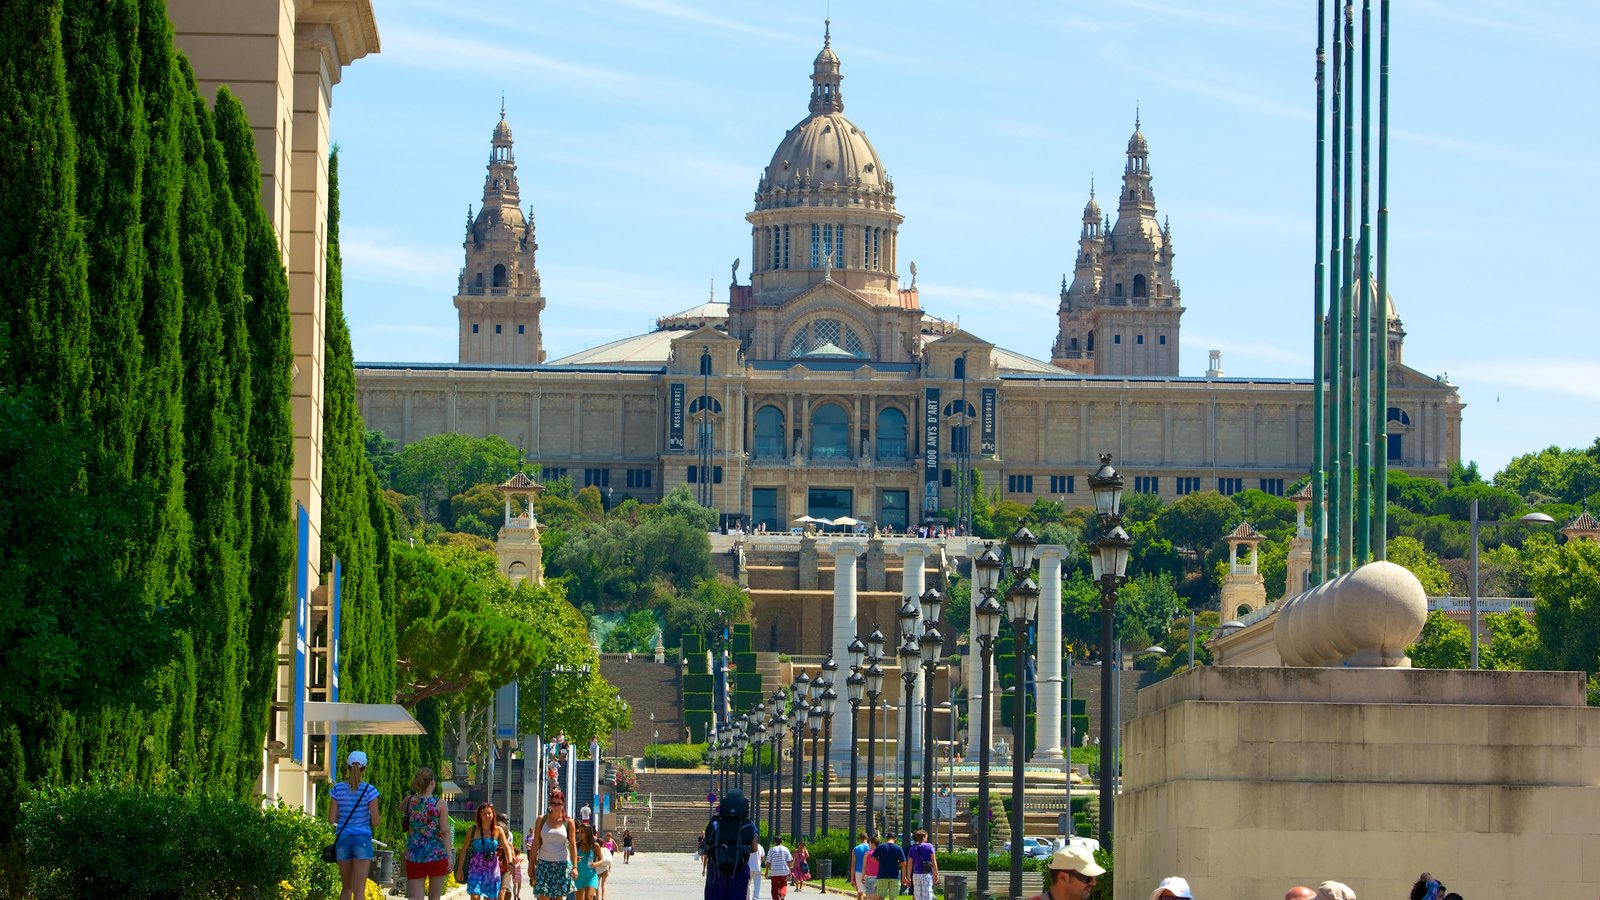 National Art Museum of Catalonia which includes heritage architecture, a city and a square or plaza